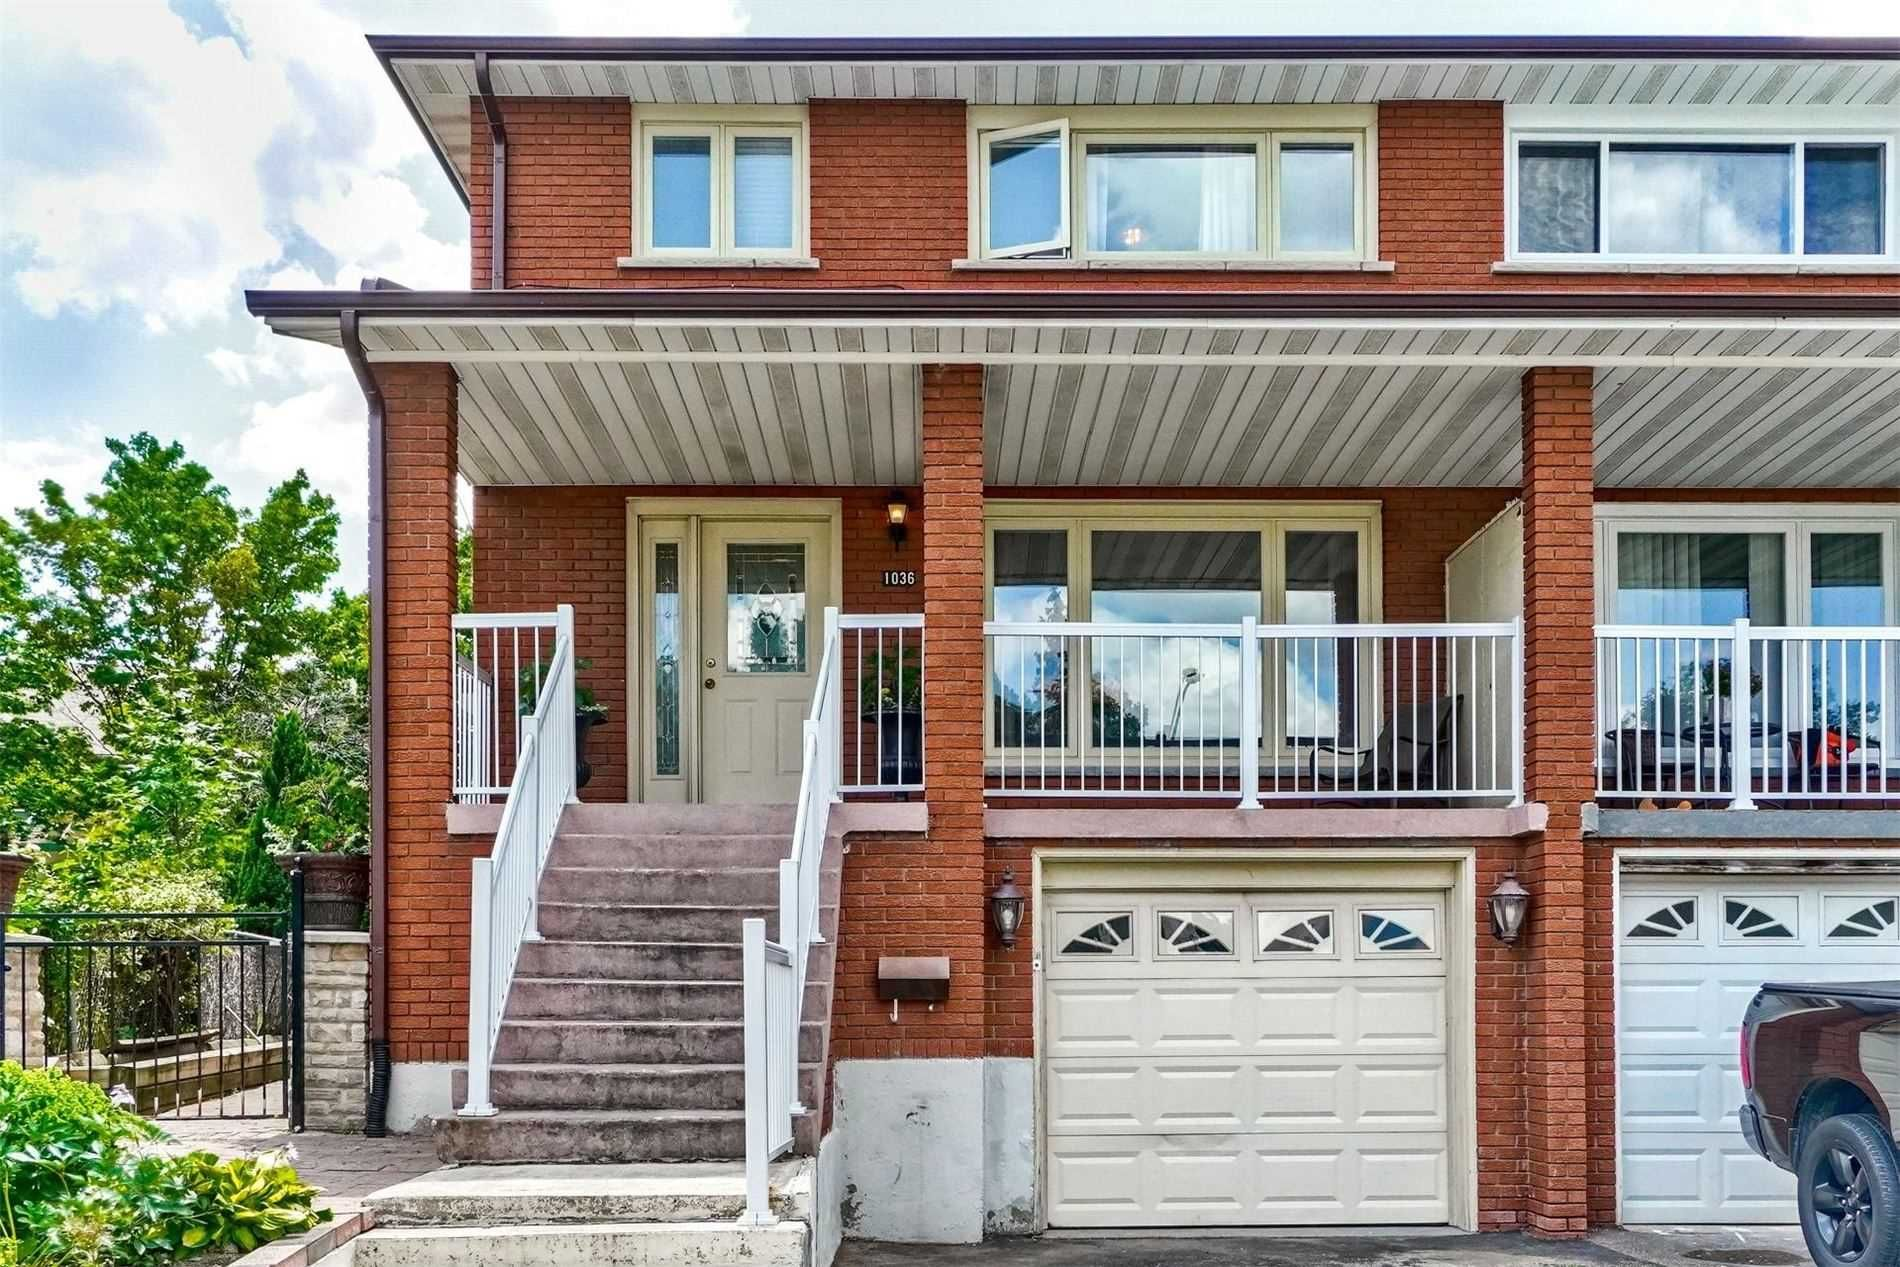 Main Photo: 1036 Stainton Drive in Mississauga: Erindale House (2-Storey) for sale : MLS®# W5316600